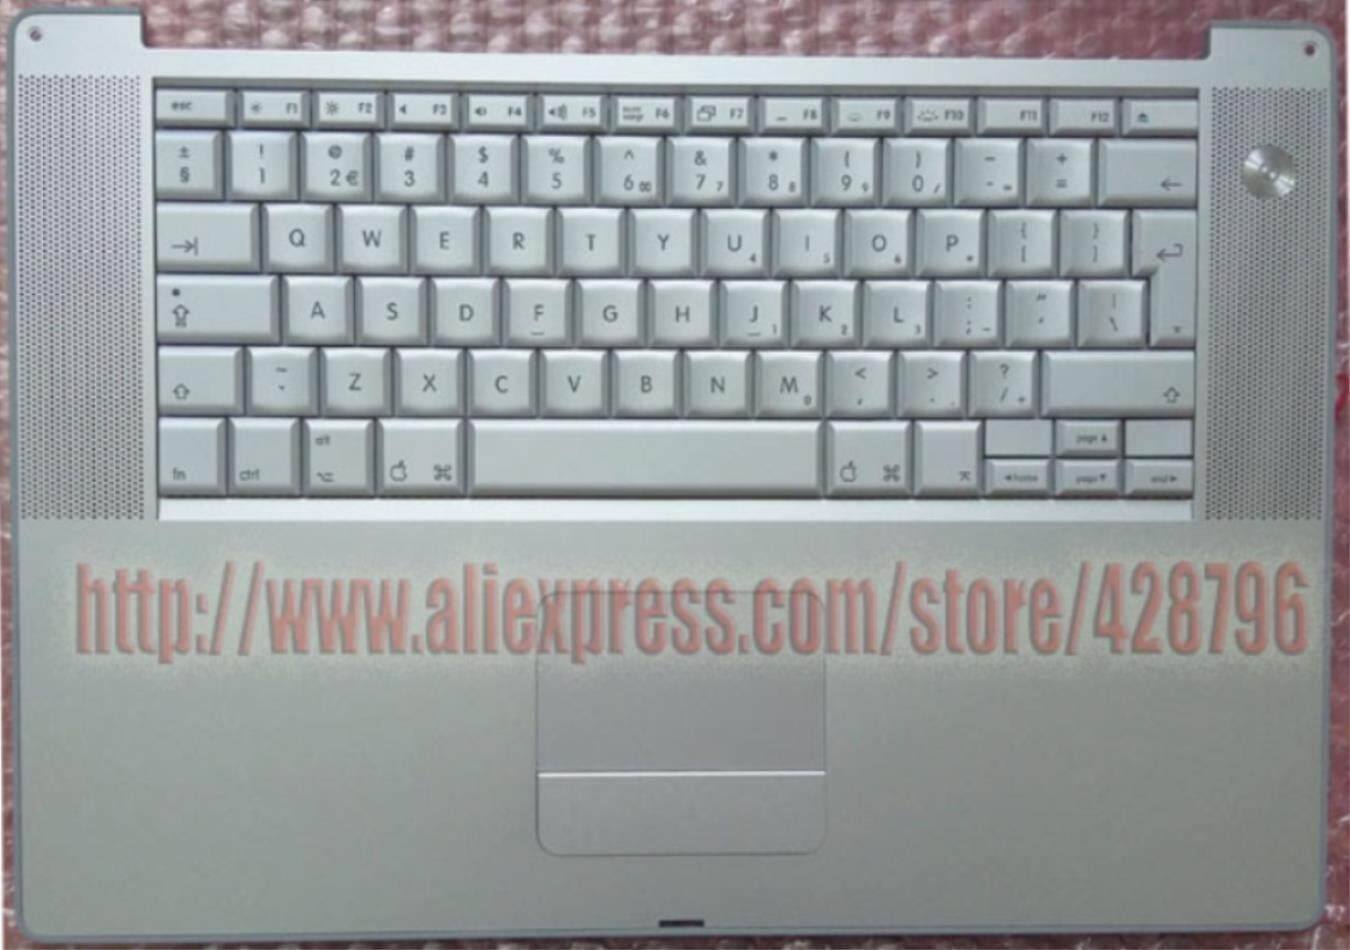 613-4697-c -bpowerbook G4 Keyboard Trackpad 15 A1046 1ghz/1.25 Ghz (m8980m8981)1.33ghz/1.5ghz A1095(m9421 M9422) Brand New!